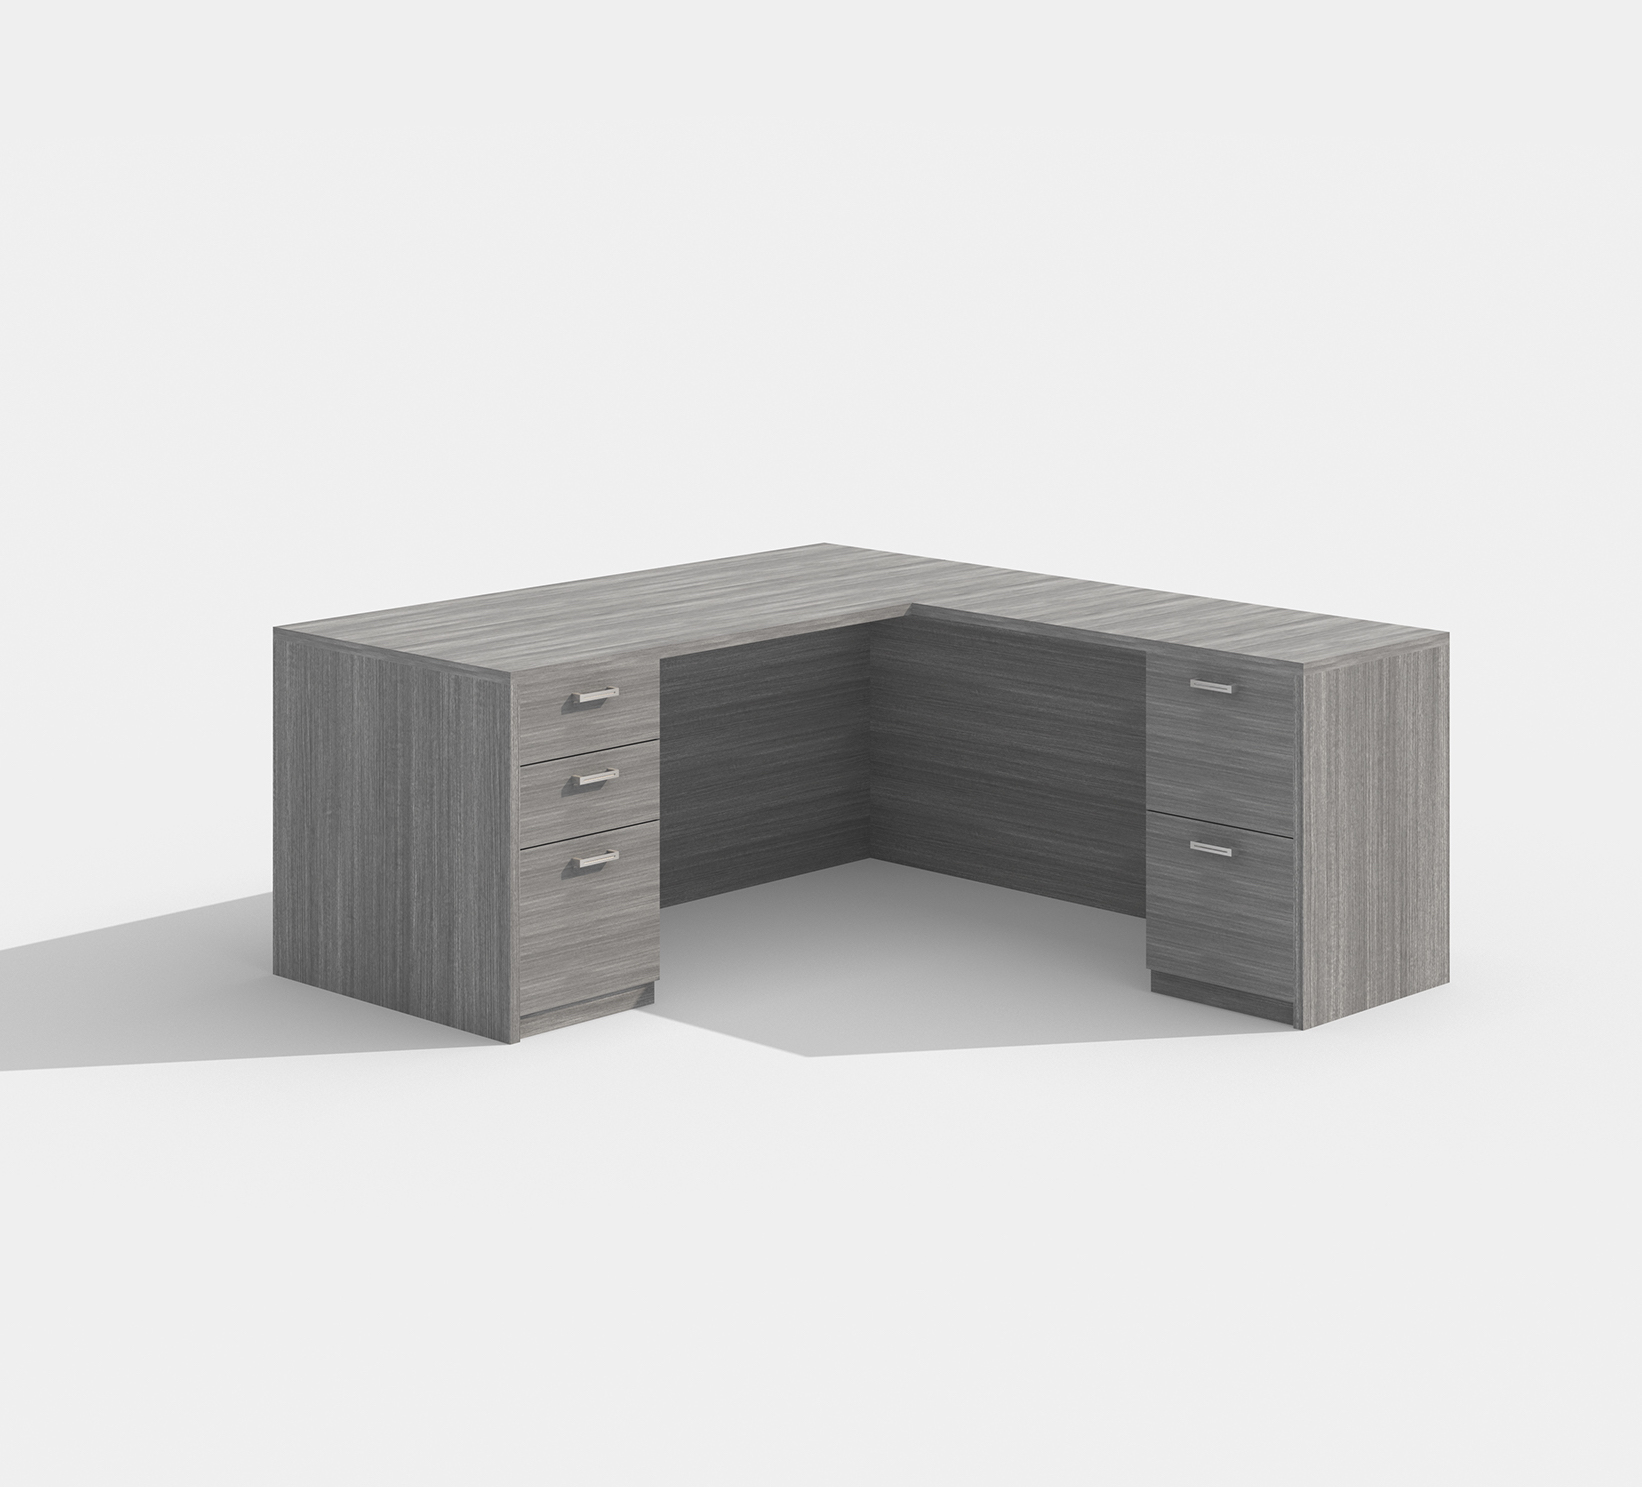 cherryman amber l-desk am-314n in valley gray